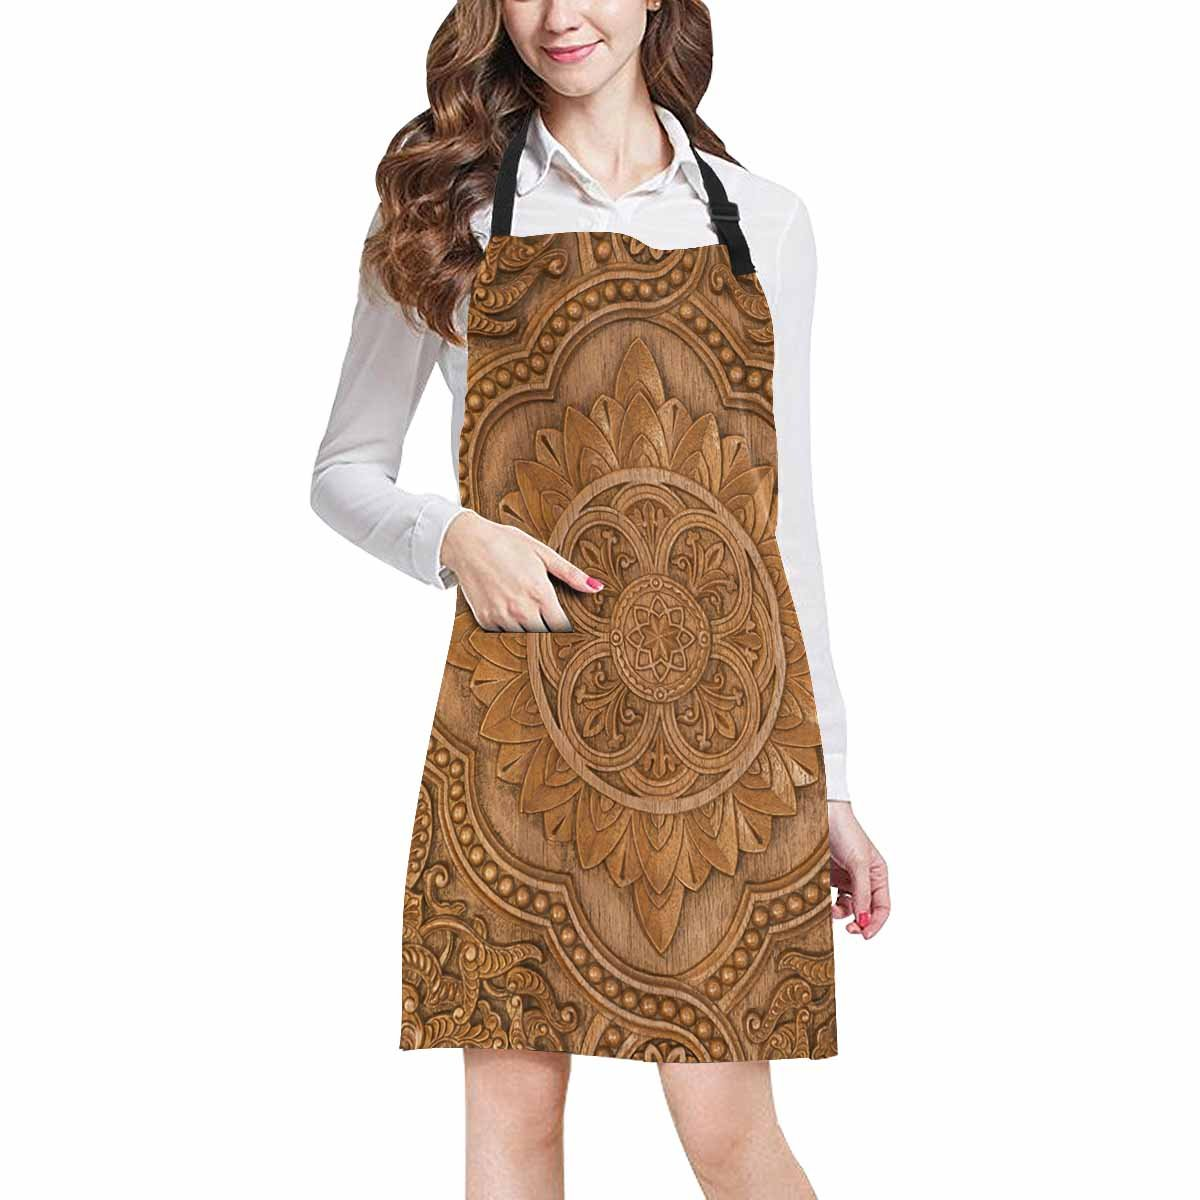 InterestPrint Retro Mandala Style Floral Circle Wood Carving Art Chef Aprons Professional Kitchen Chef Bib Apron with Pockets Adjustable Neck Strap, Plus Size